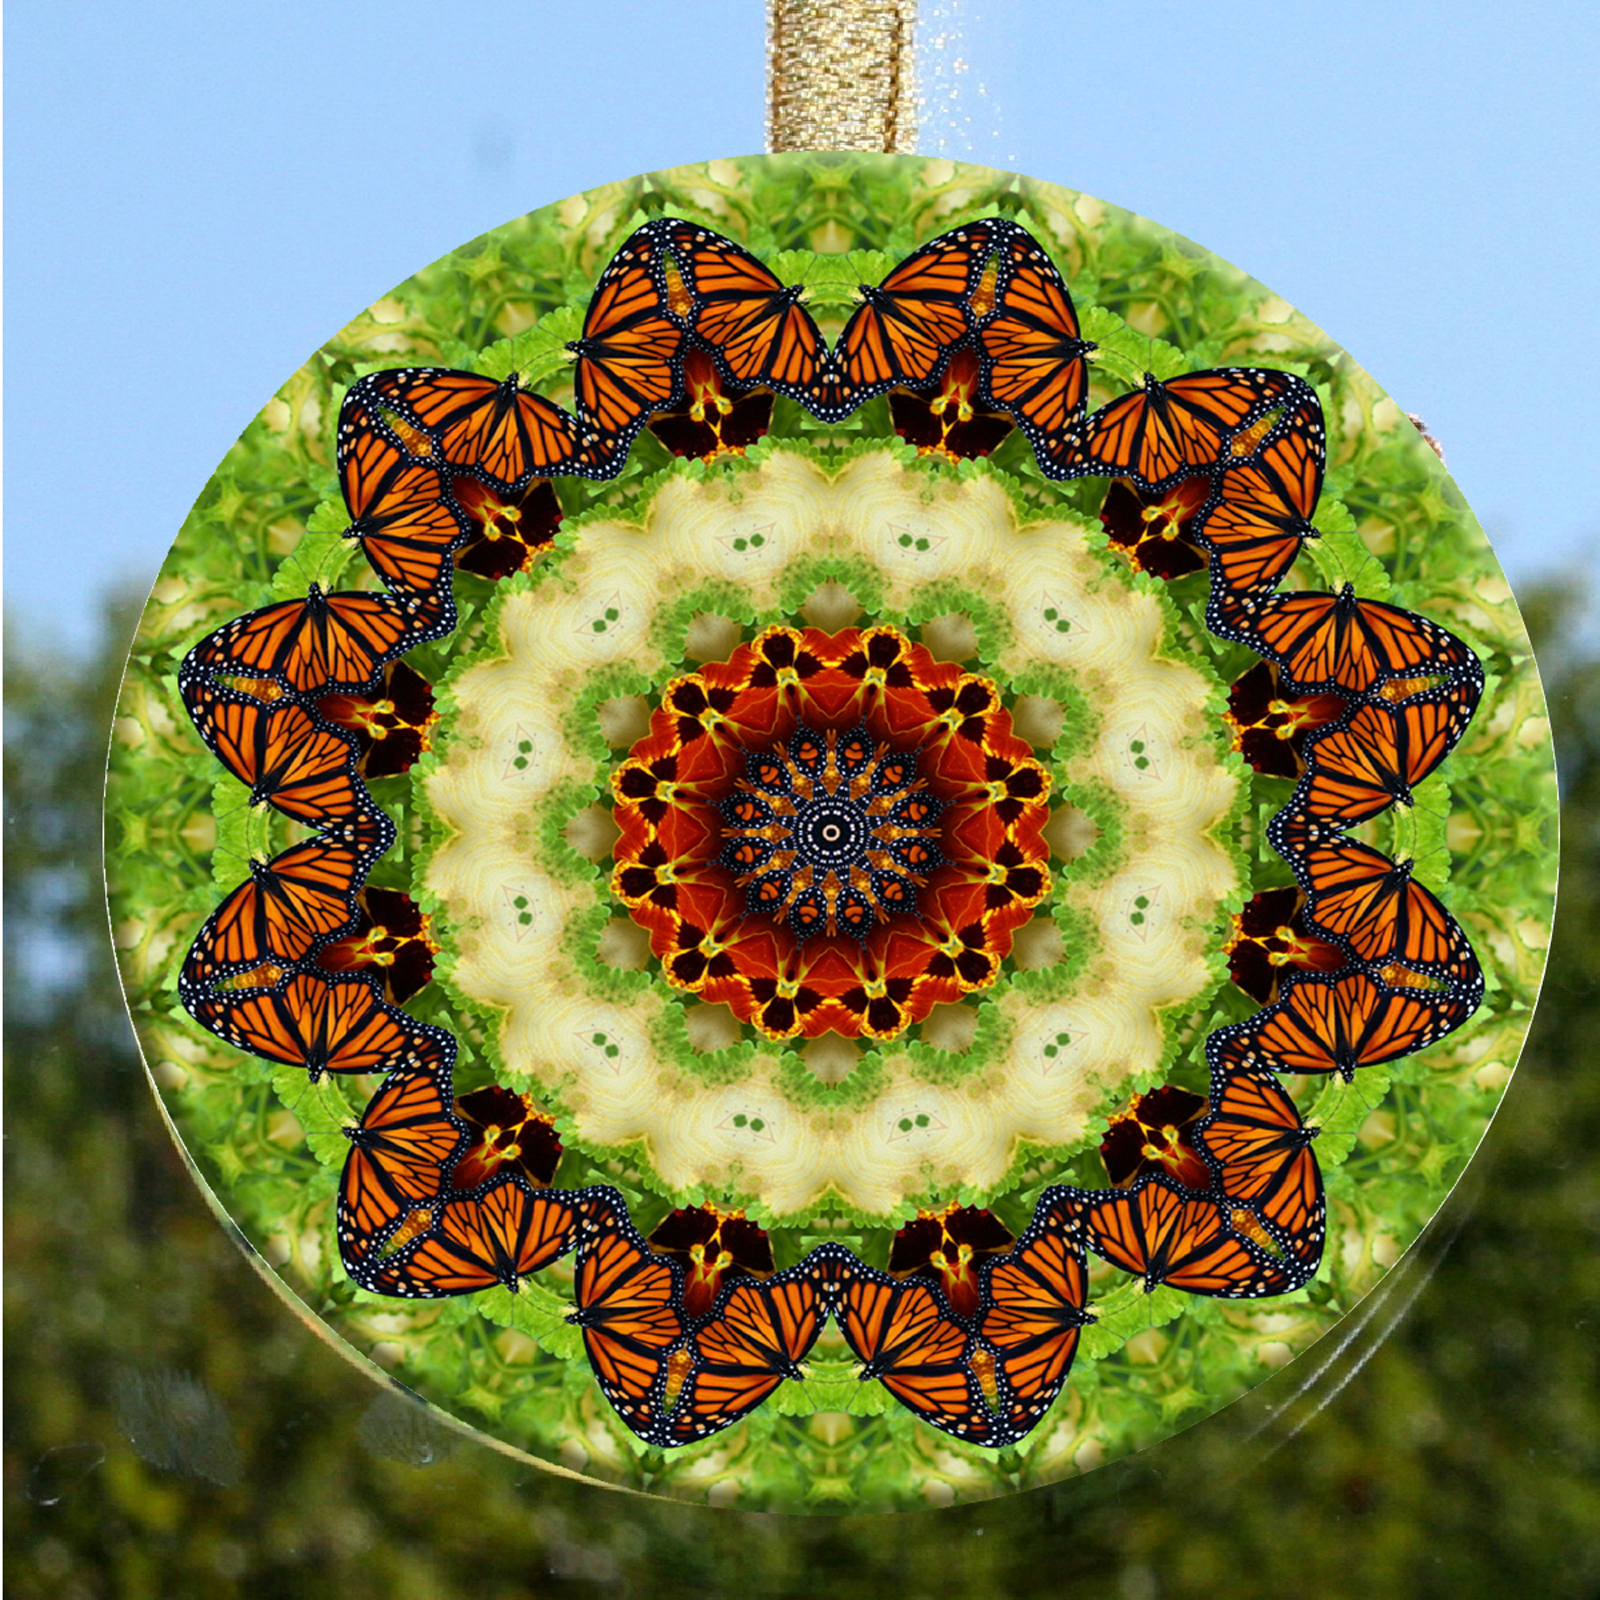 Monarch Butterfly Glass Suncatcher Home Decor Ornament Window Decor Mandala Meditation Zen Unique Gift For Her Yoga Gift 17